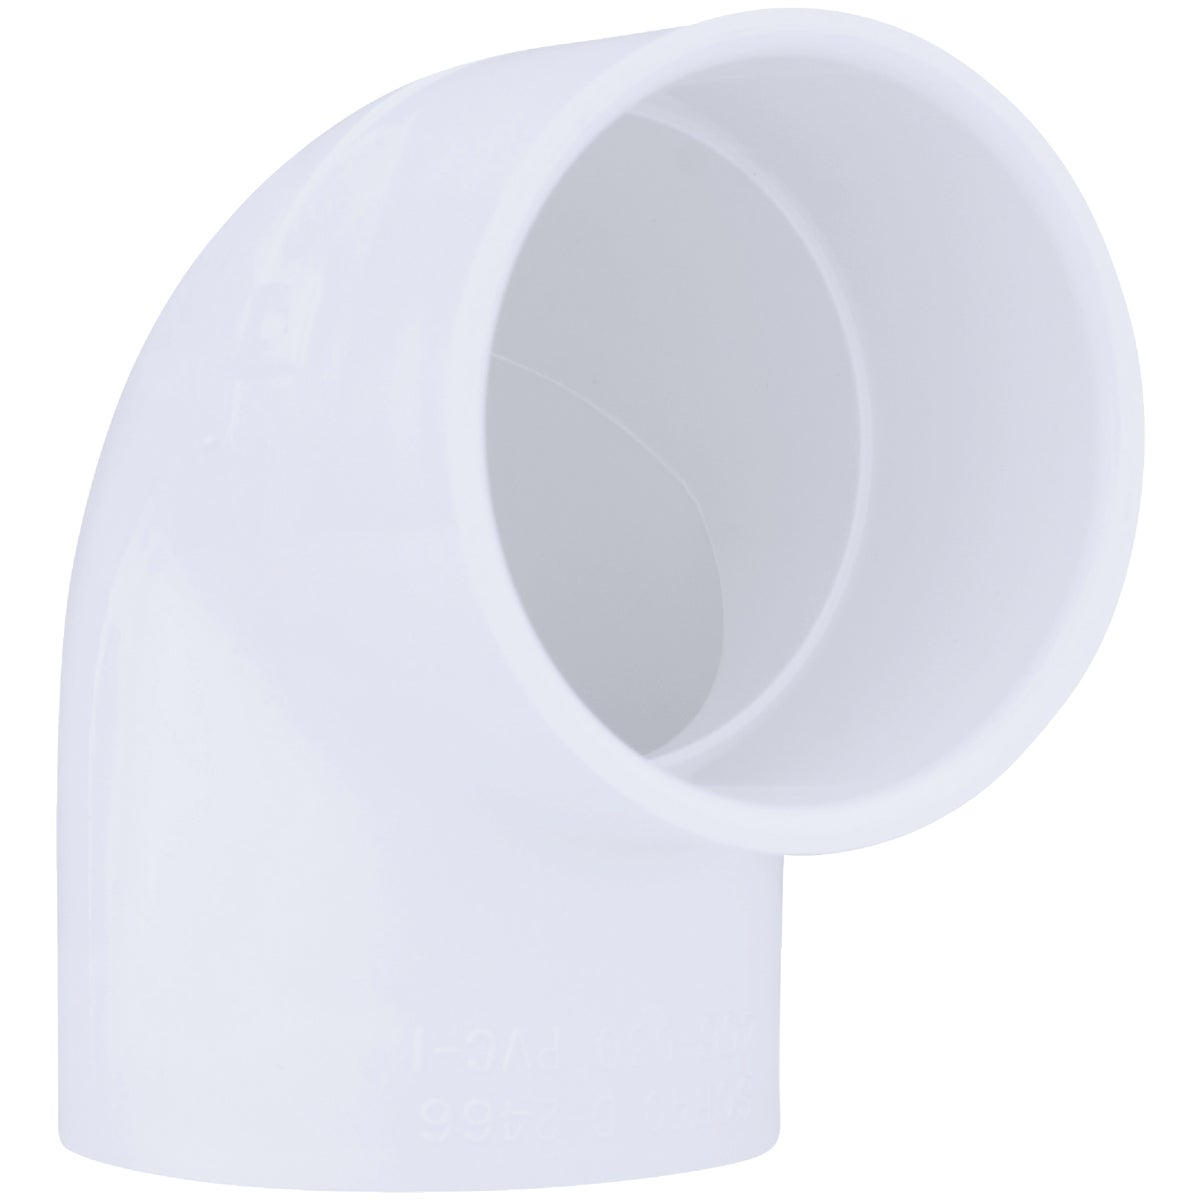 "3"" 90D SCH40 PVC ELBOW - 30730 by Genova Inc"